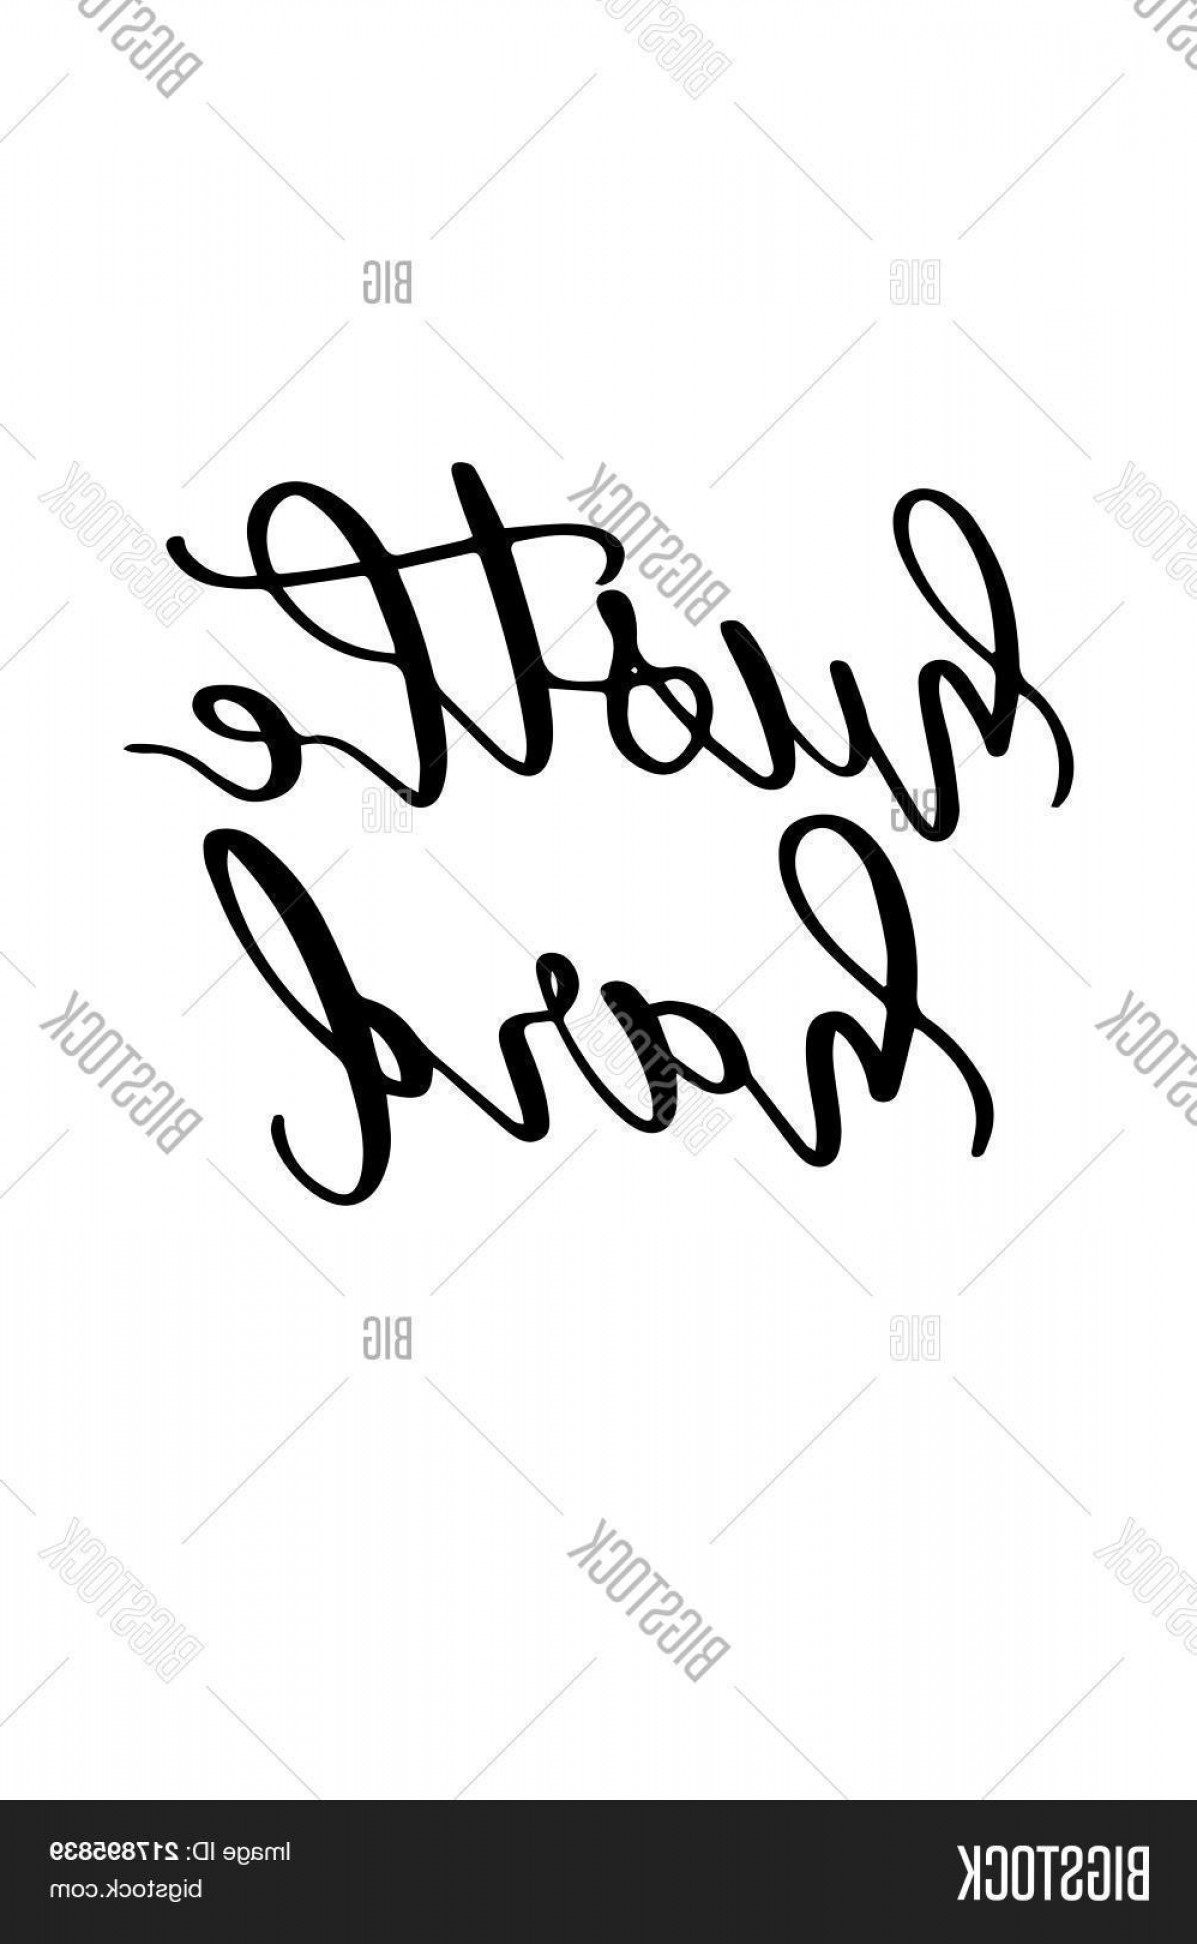 Vector Hustle Hard: Stock Vector Hand Drawn Lettering Ink Illustration Modern Brush Calligraphy Isolated On White Background Hustle Hard